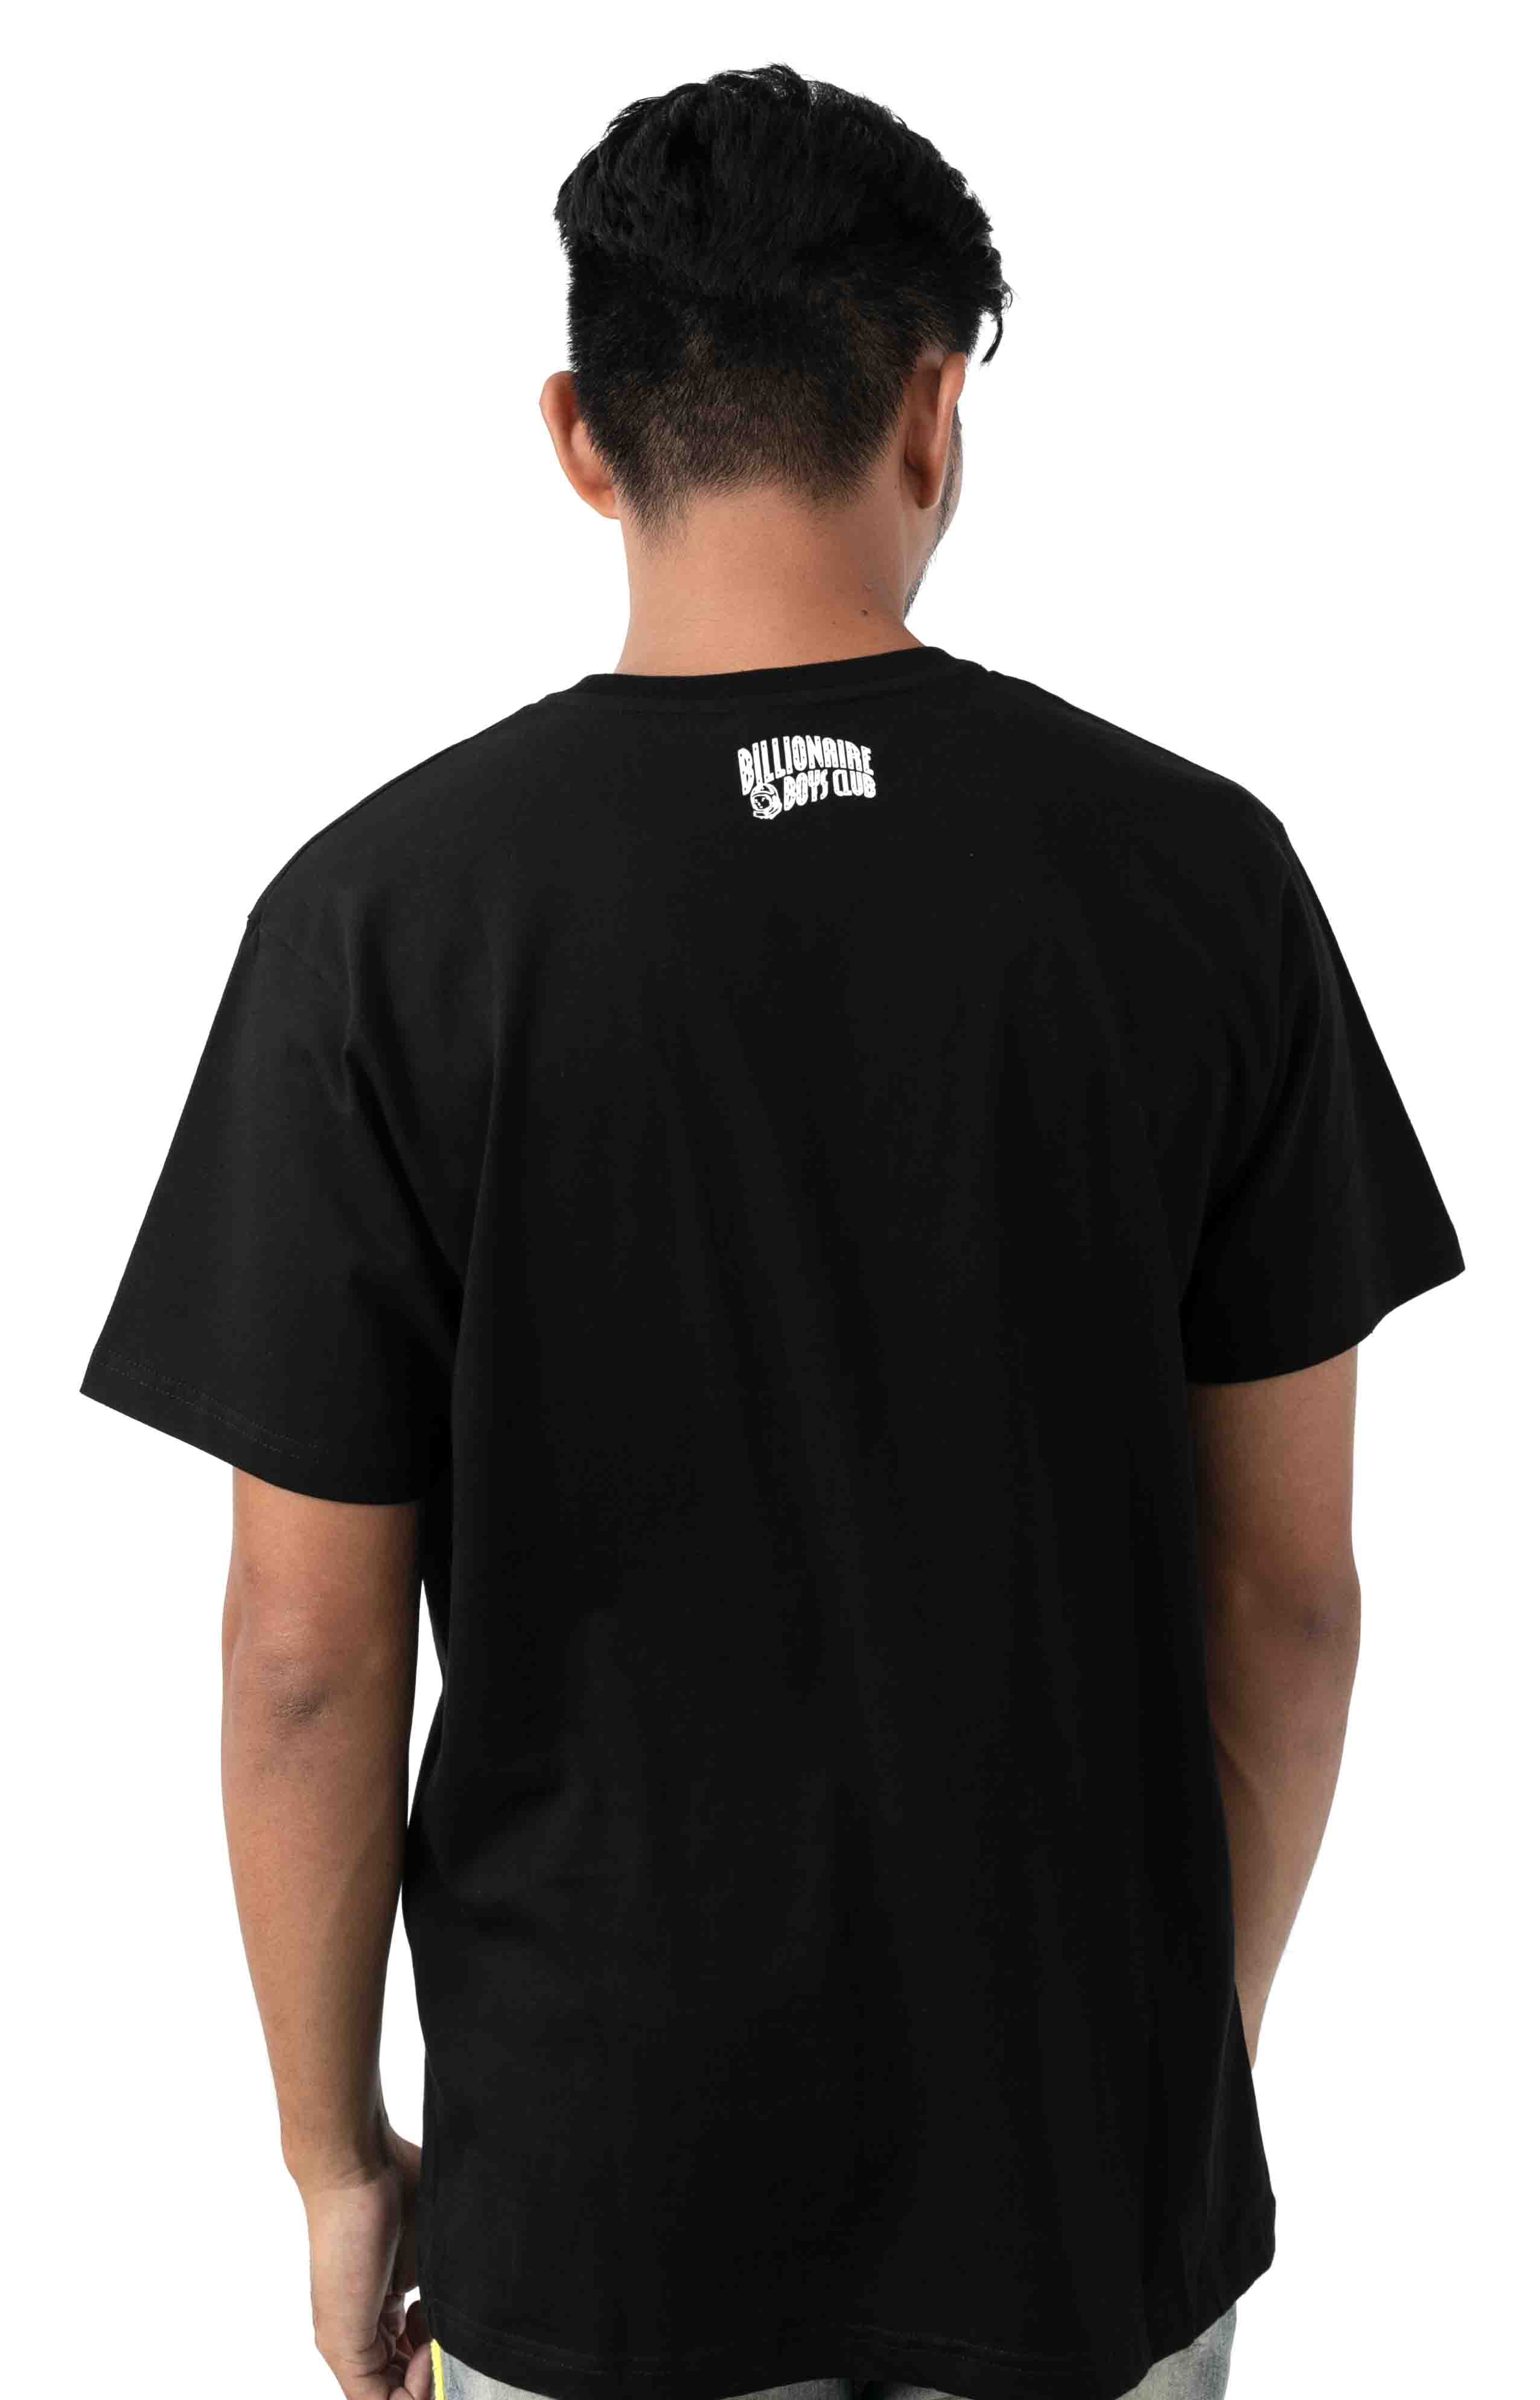 BB Hot Air T-Shirt - Black 3